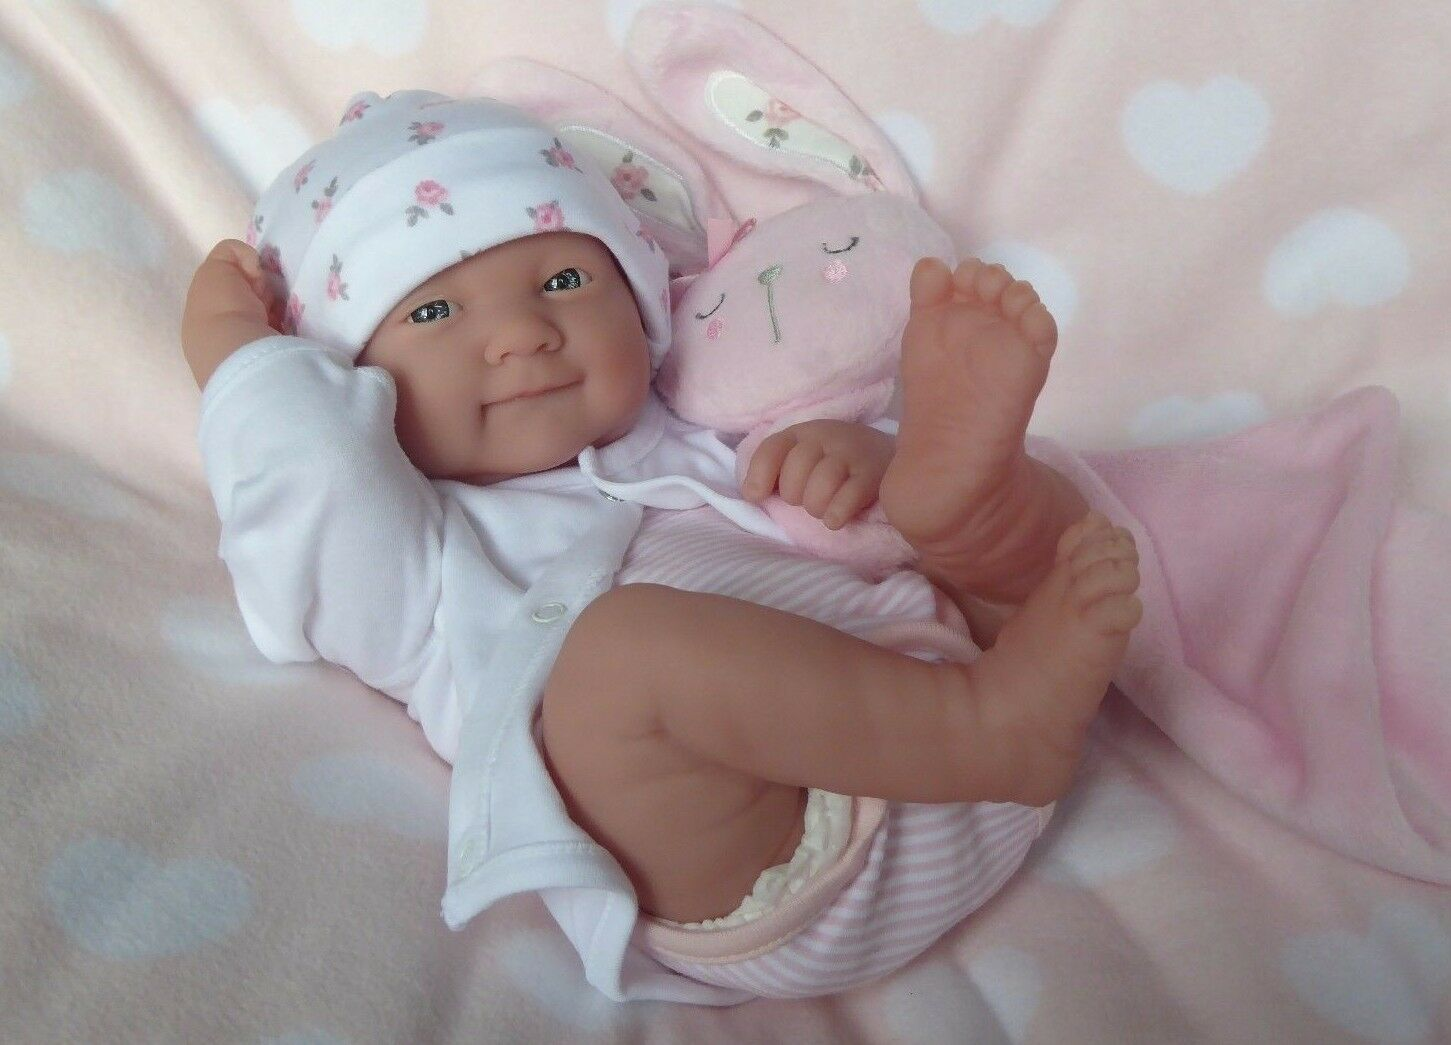 REALISTIC LIFELIKE DOLL   ️  BERENGUER LA NEWBORN REAL BABY GIRL REBORN   PLAY